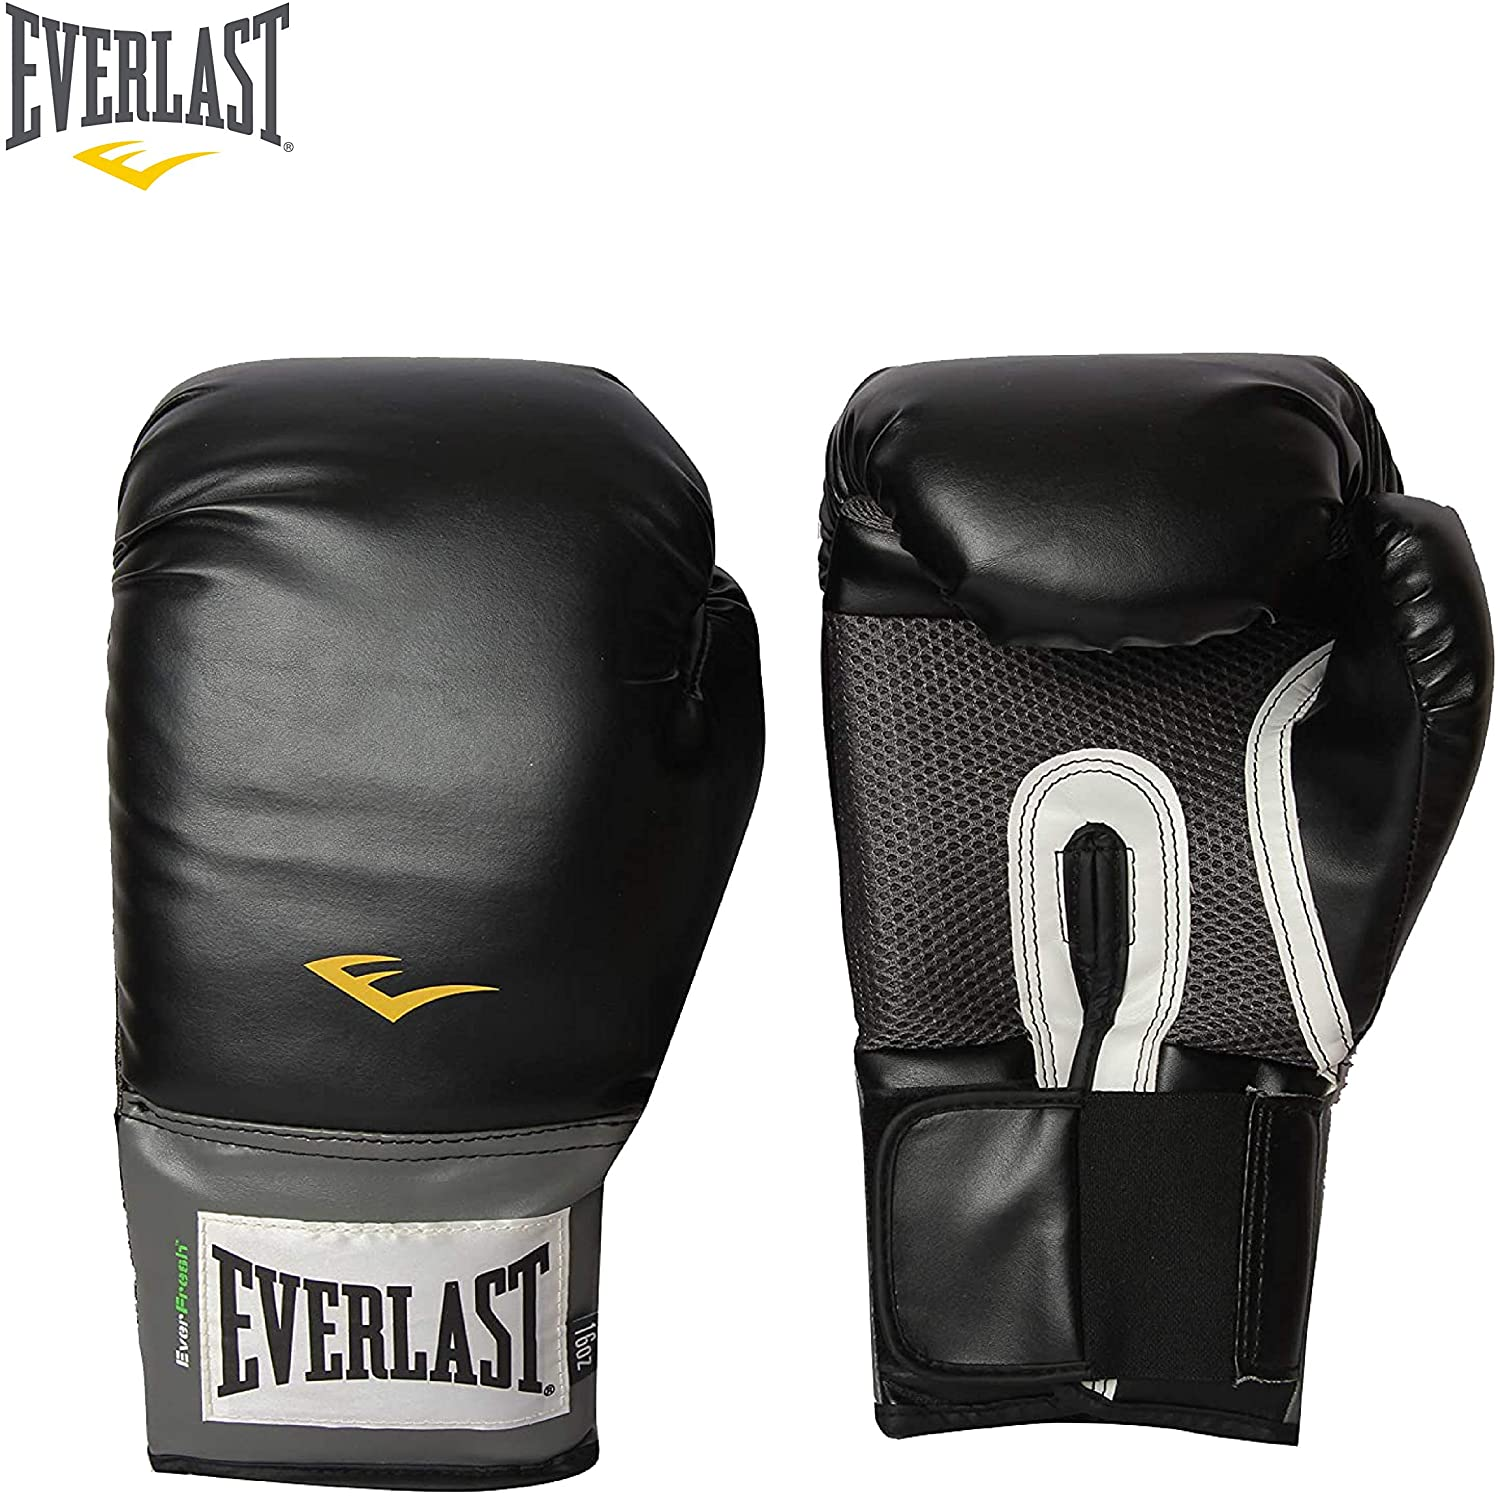 11. everlast pro boxing gloves